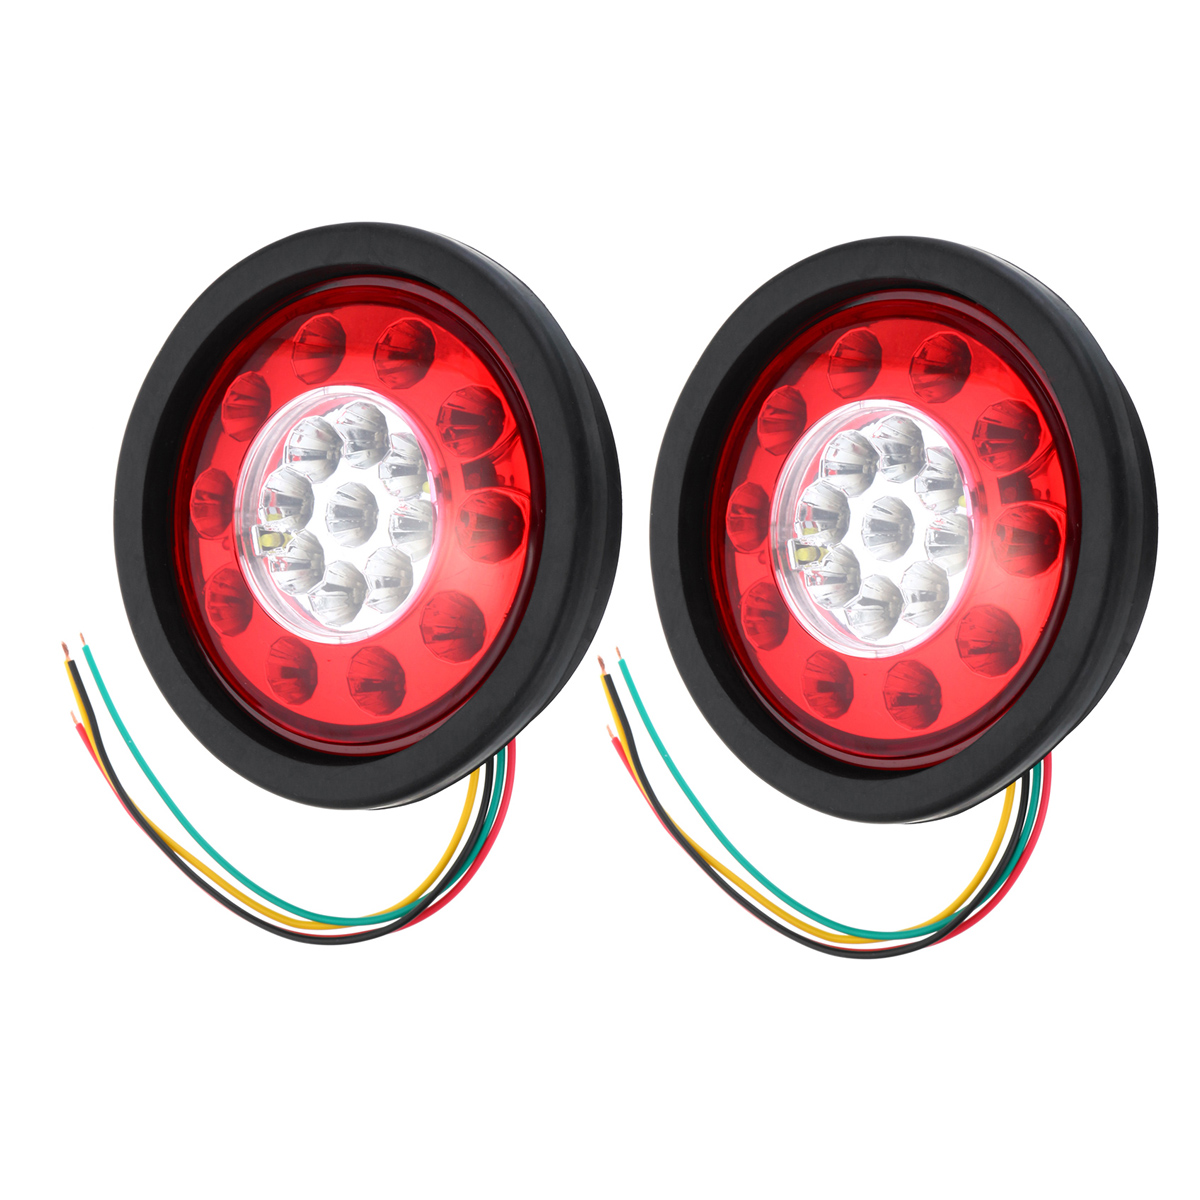 19 LED Truck Lorry Brake Lights Stop Turn Tail Lamp Black